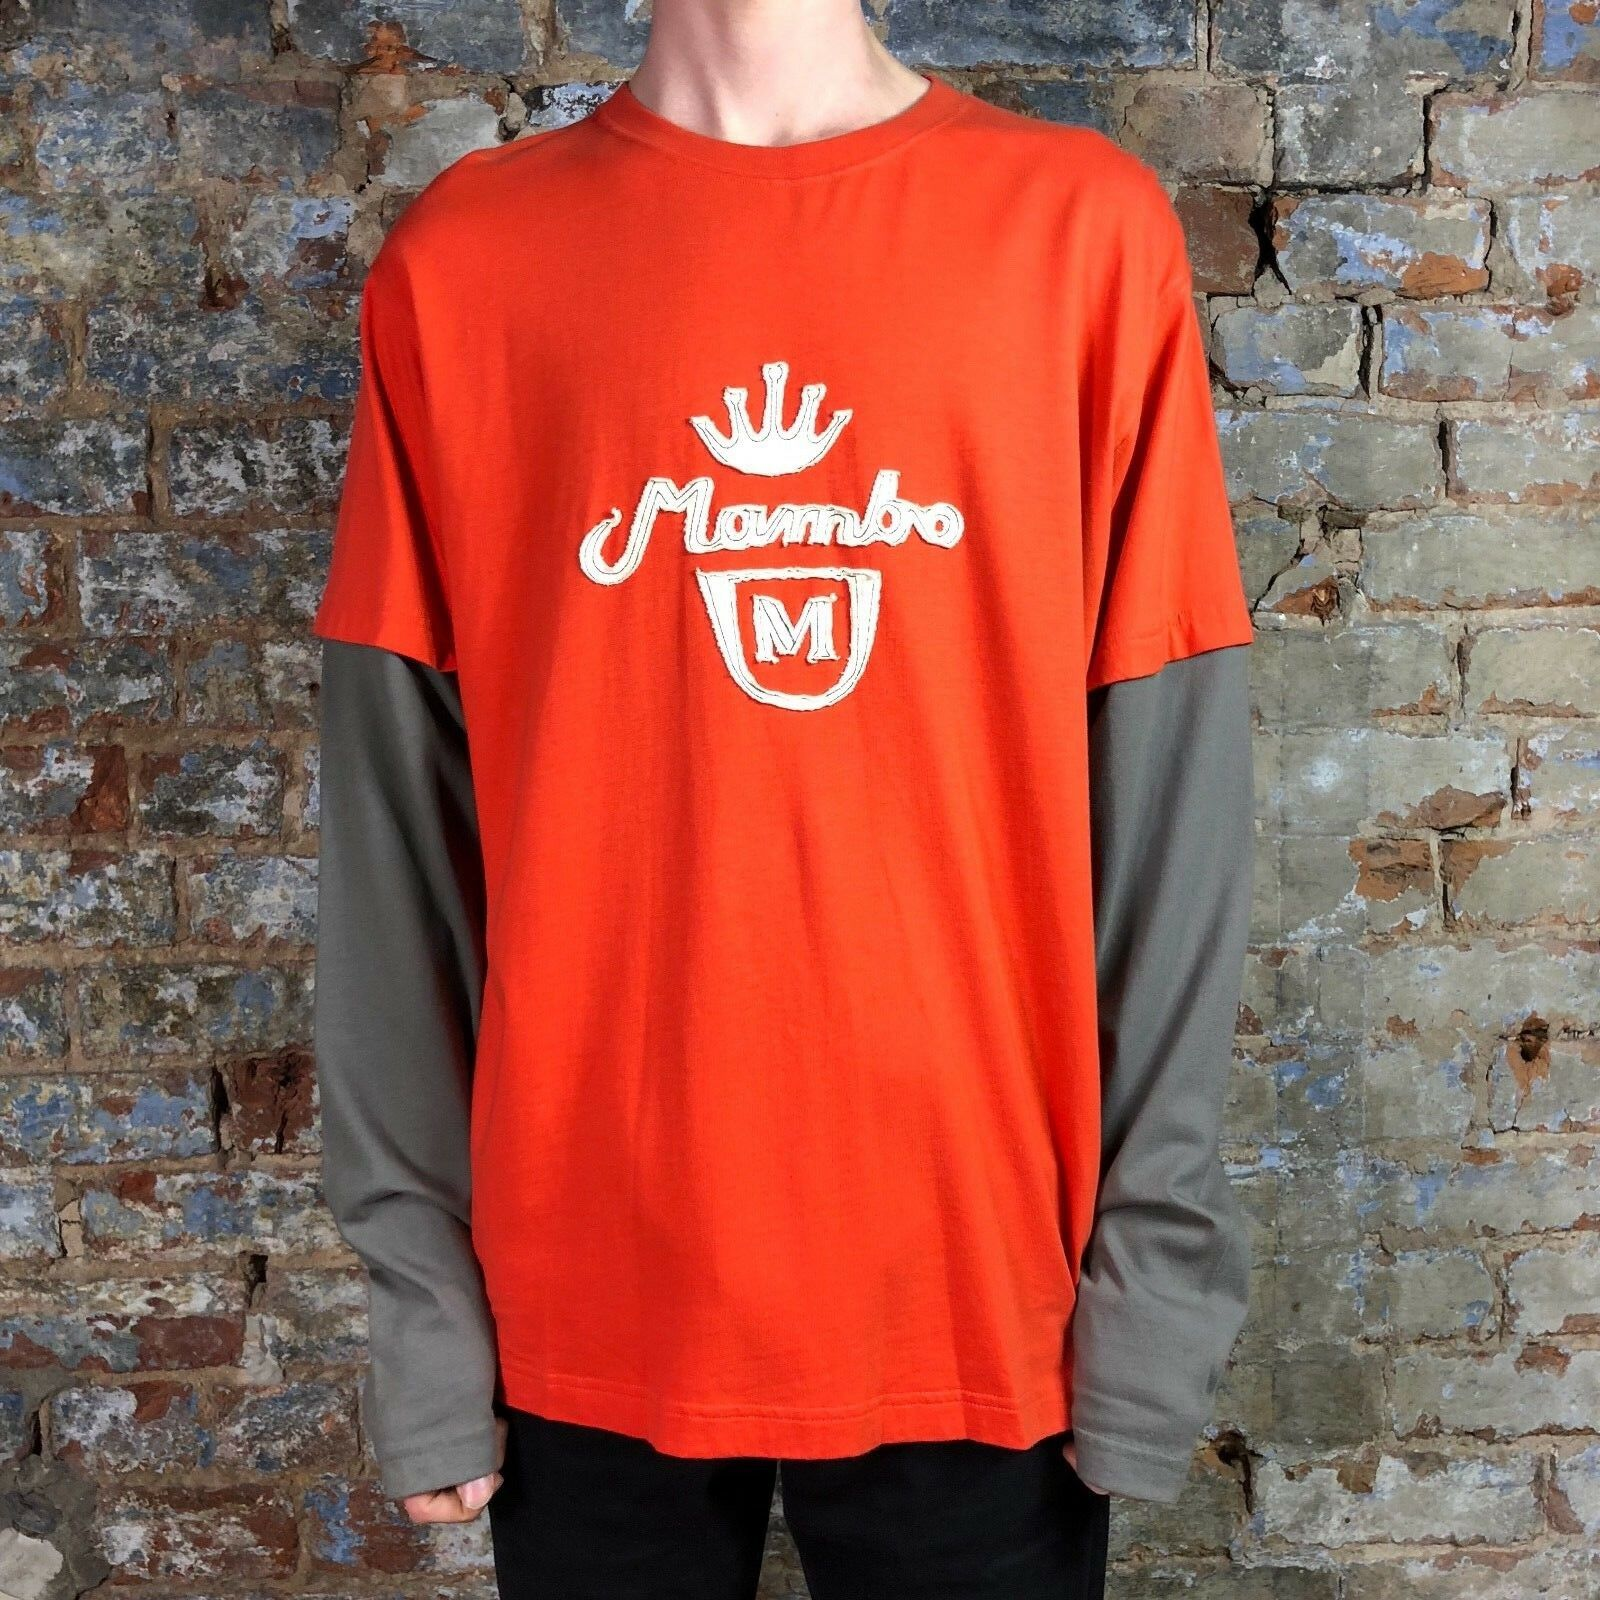 Details about Mambo Long Sleeve Screen T-Shirt Burnt Orange size S d38e538e2